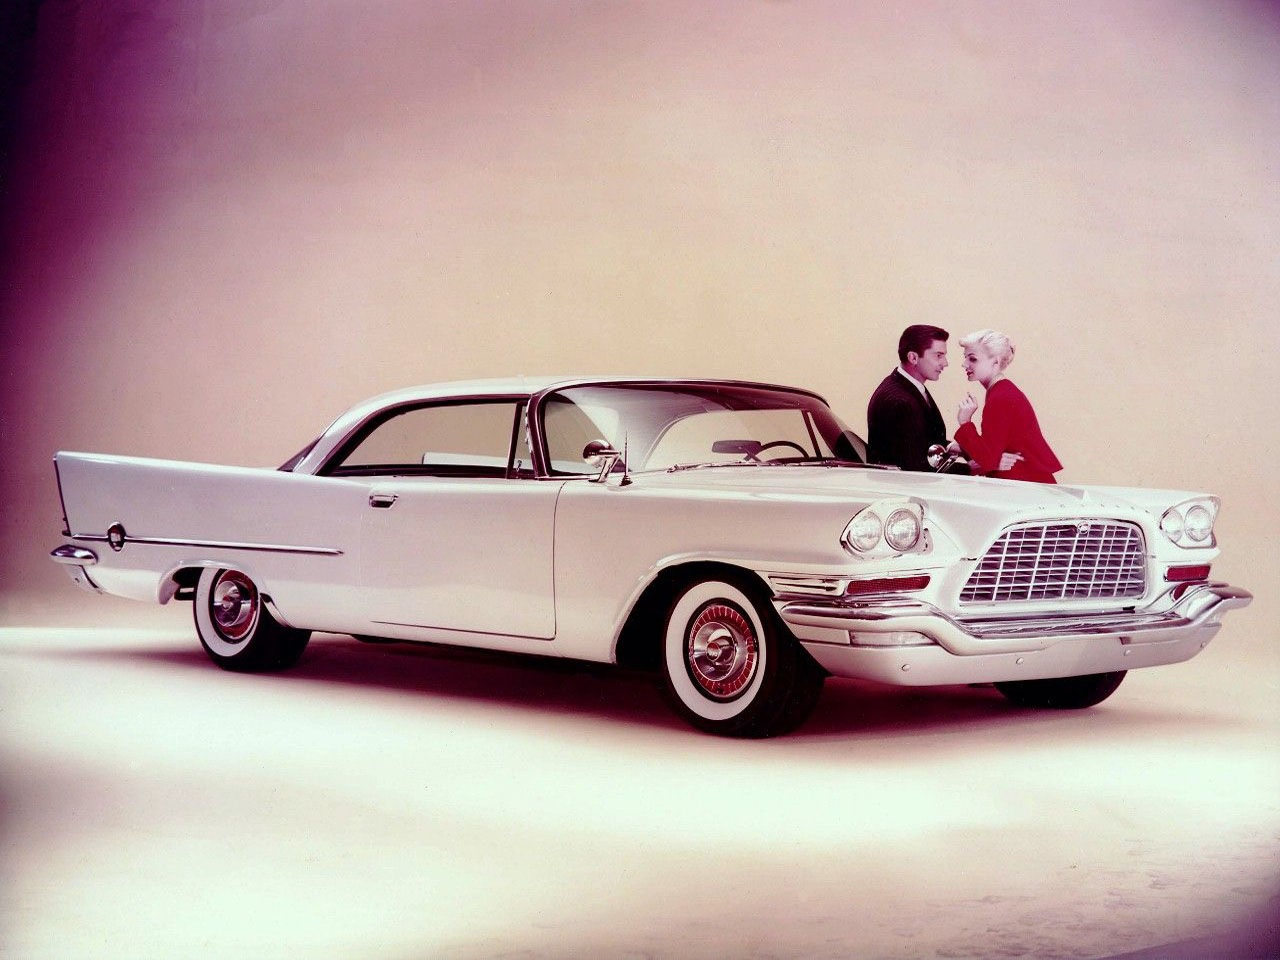 chrysler 300d 1958 coupe branco lateral